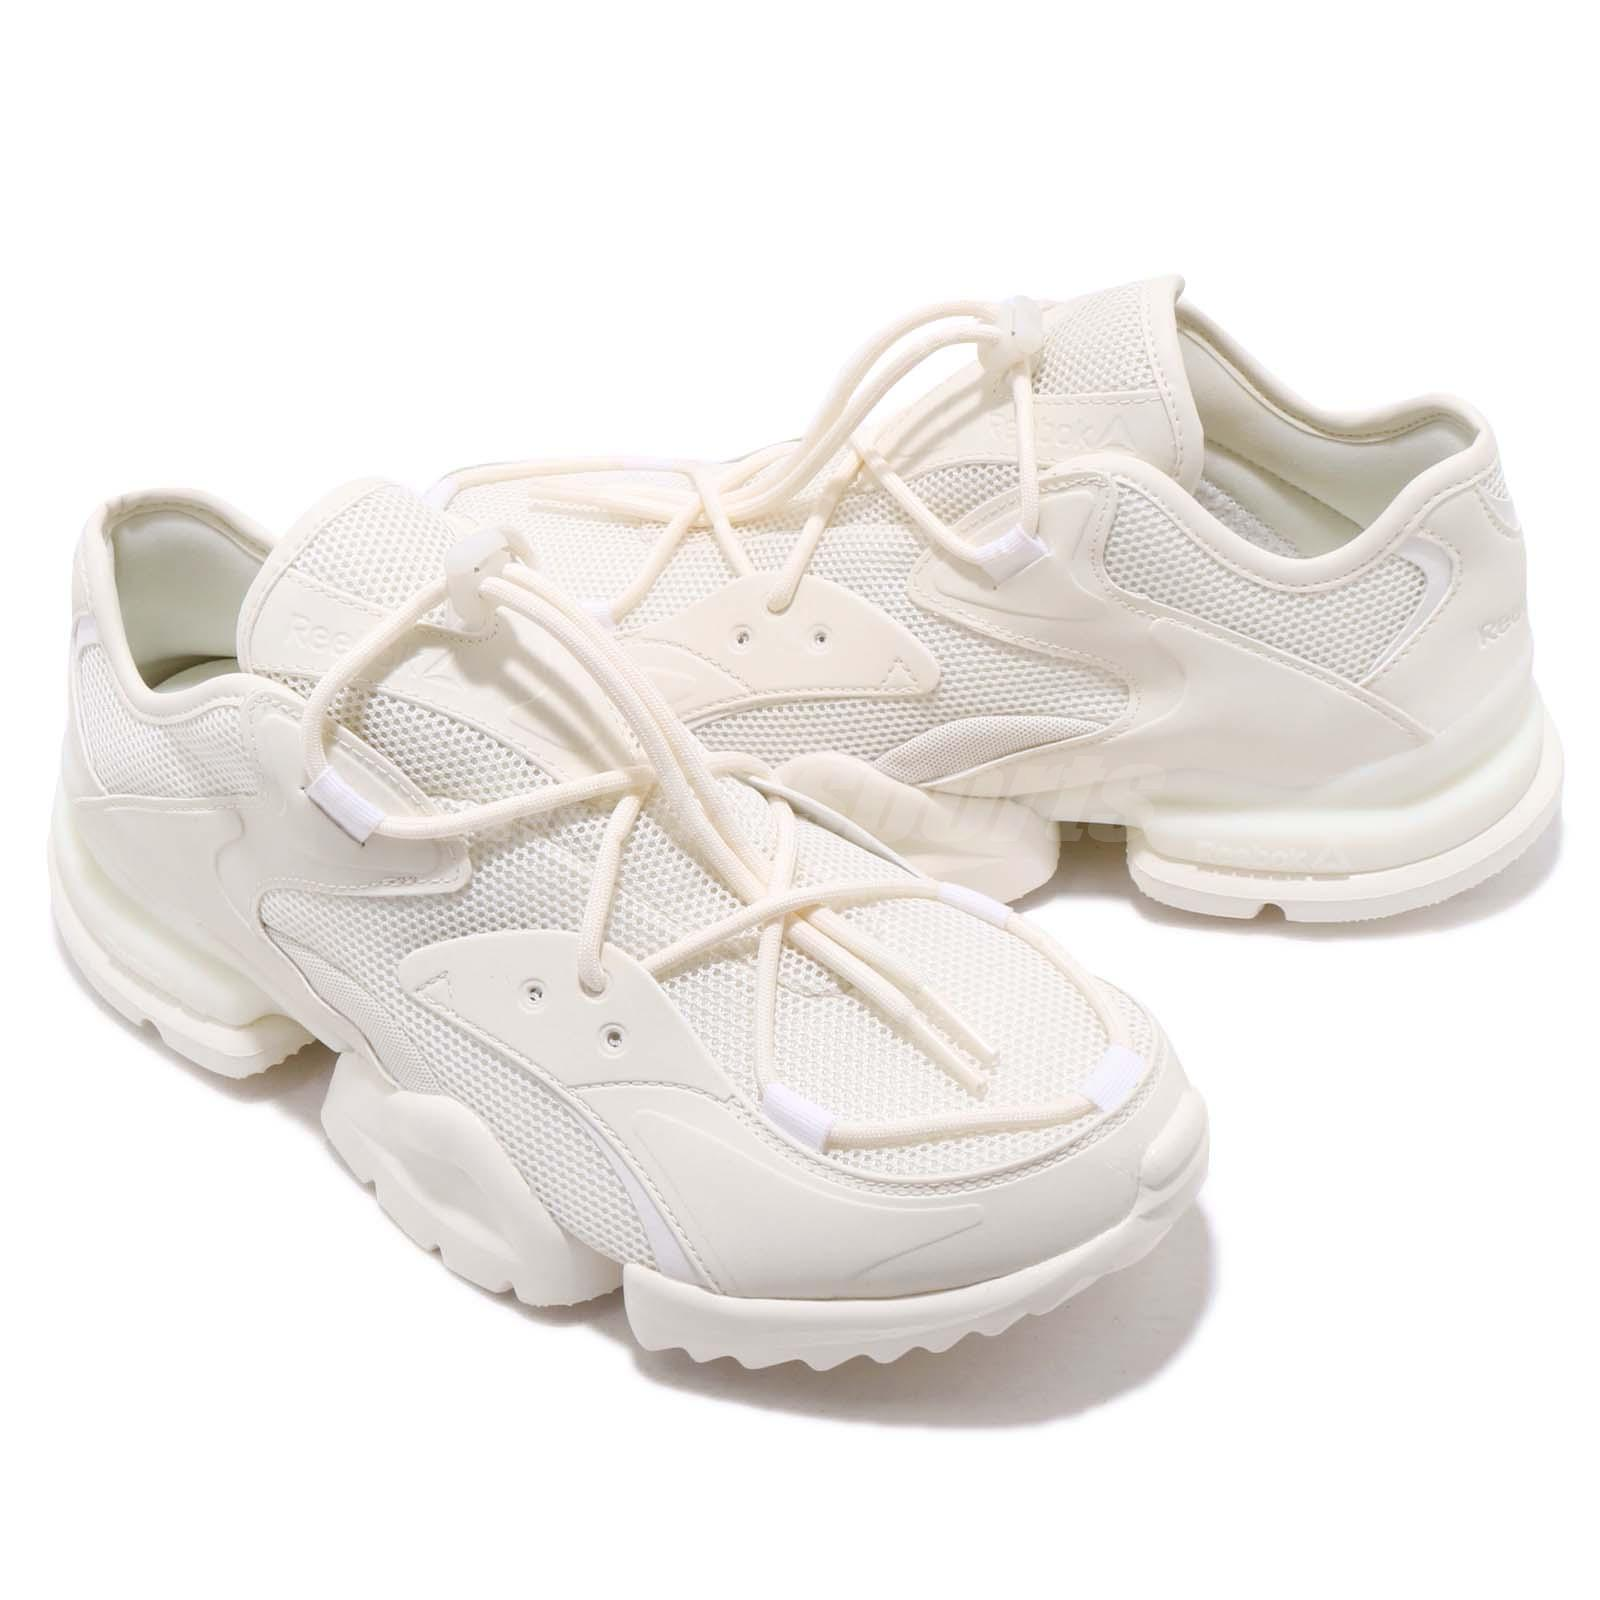 Détails sur Reebok RUN_R 96 Chalk White Men Running Daddy Chunky Shoes Sneakers CN4602